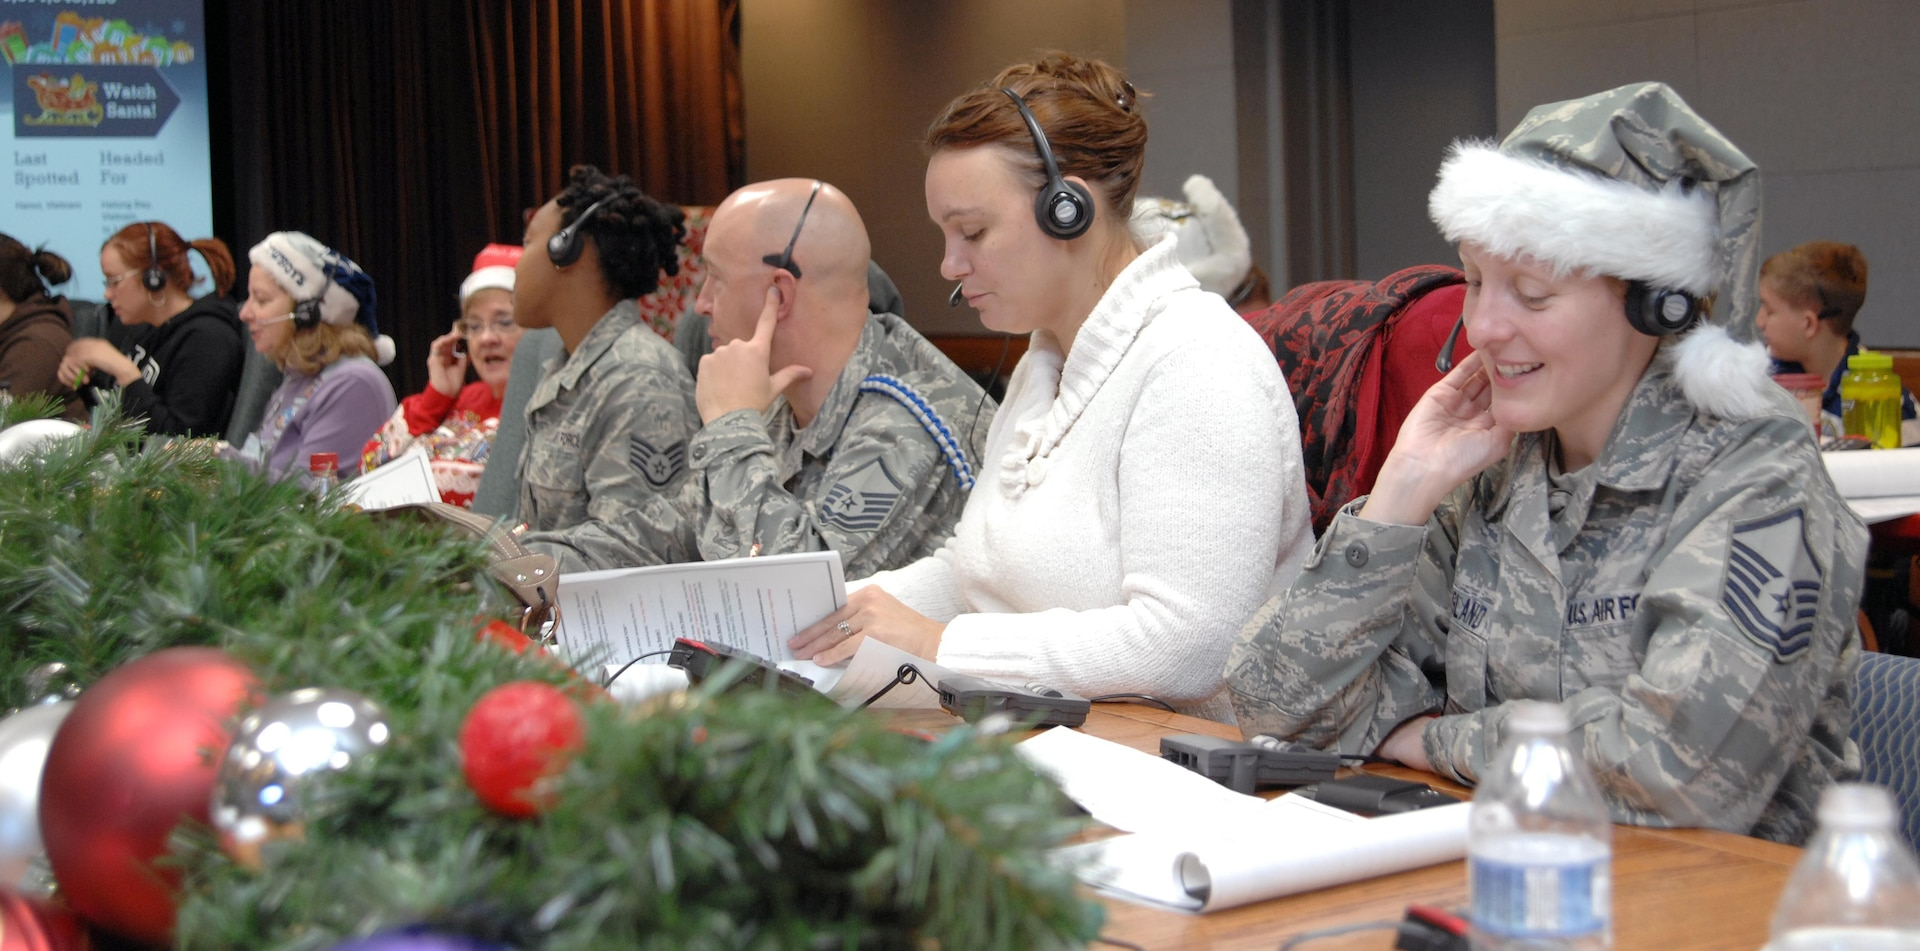 PETERSON AIR FORCE BASE, Colo. - Volunteers for NORAD Tracks Santa take calls at the NTS Operations Center Dec. 24, 2012. More than 1,200 volunteers took over 114,000 calls over a 24-hour period. (U.S. Air Force photo by Tech. Sgt. Thomas J. Doscher)